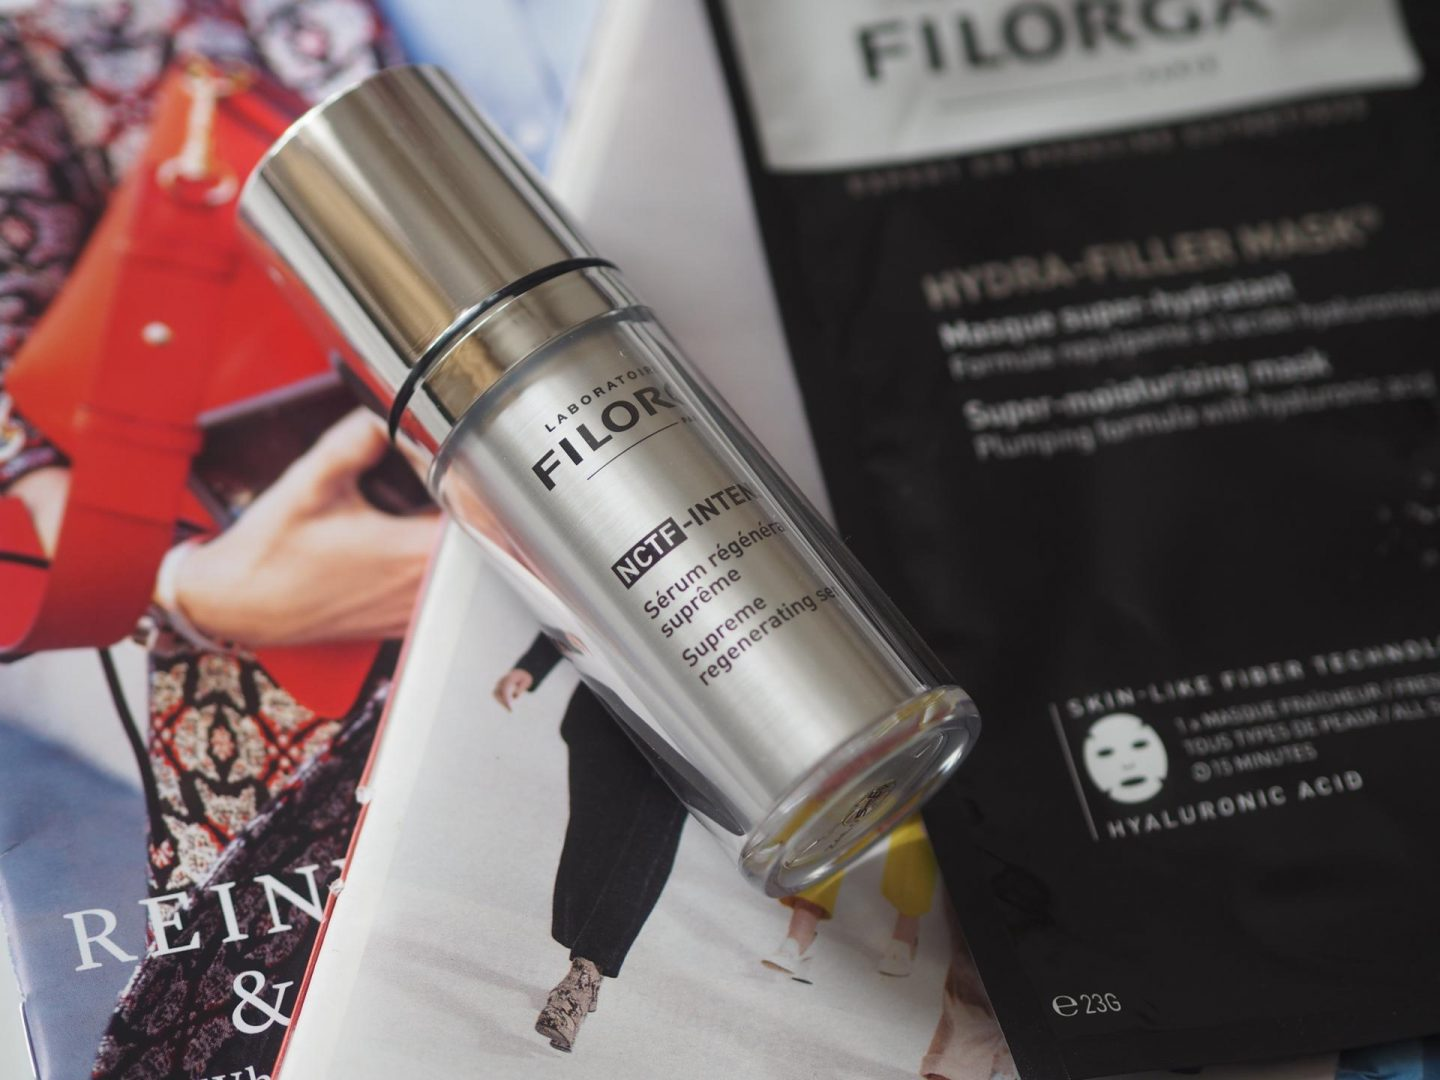 Filorga NCTF-Intense Supreme Regenerating Serum